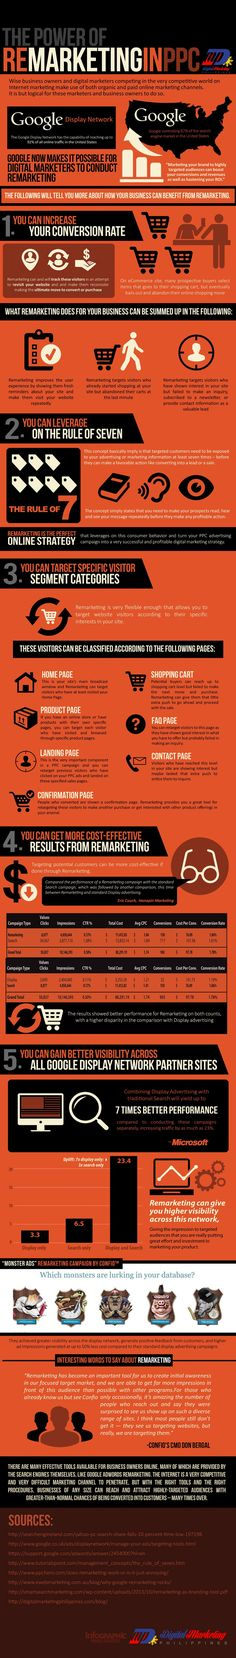 The power of the remarketing and PPC. #infographic